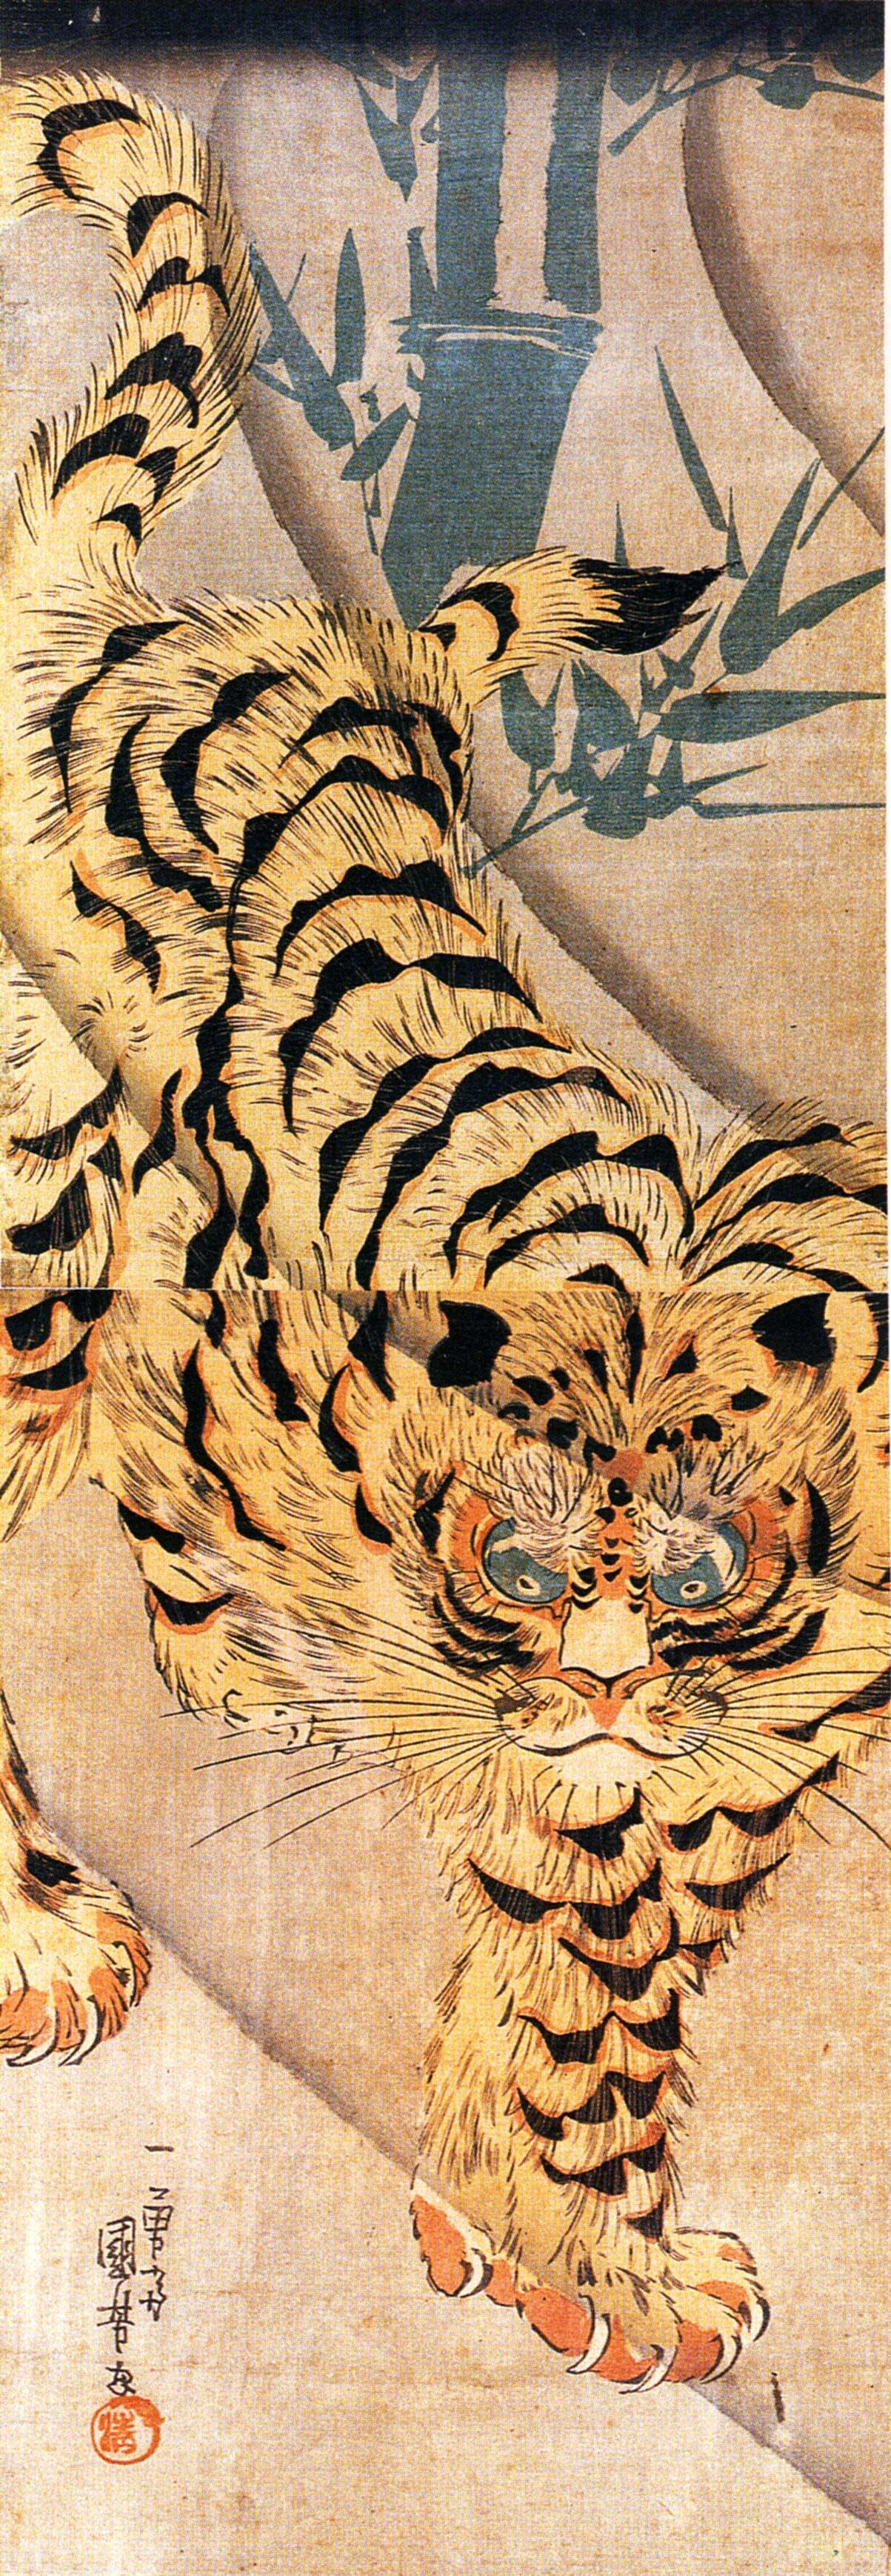 Tiger woodblock print by Utagawa Kuniyoshi